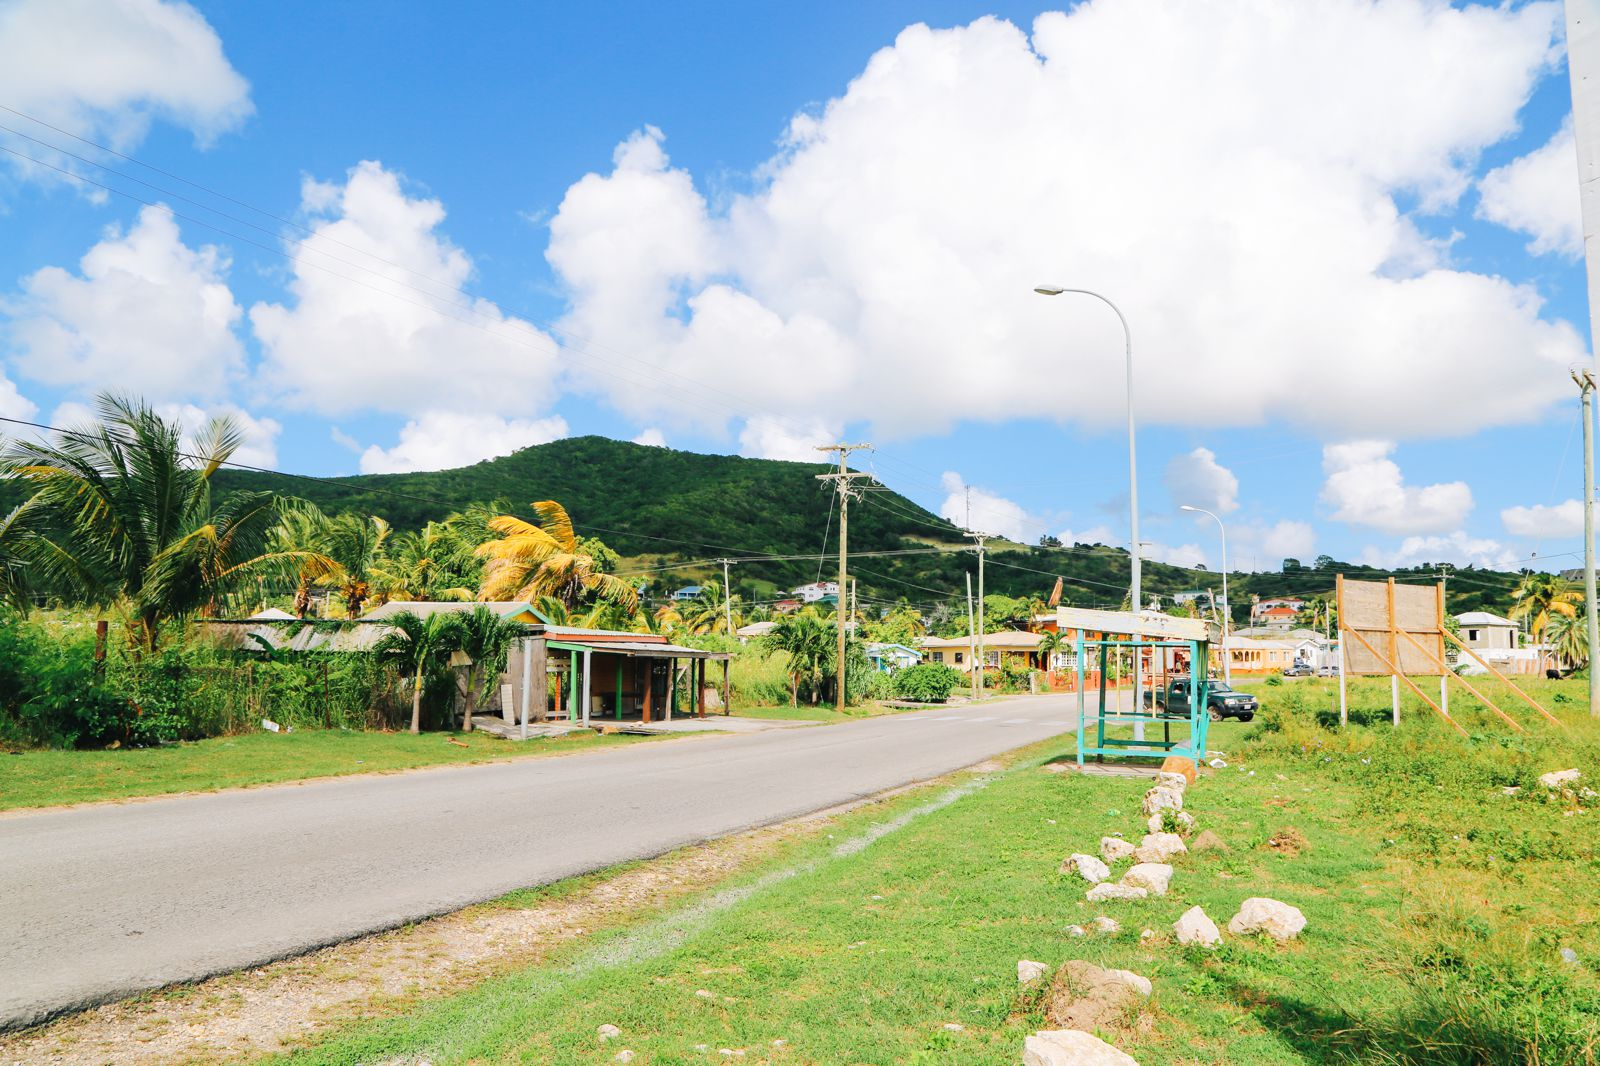 Exploring The Caribbean Island Of Antigua By Land - Part 2 (52)